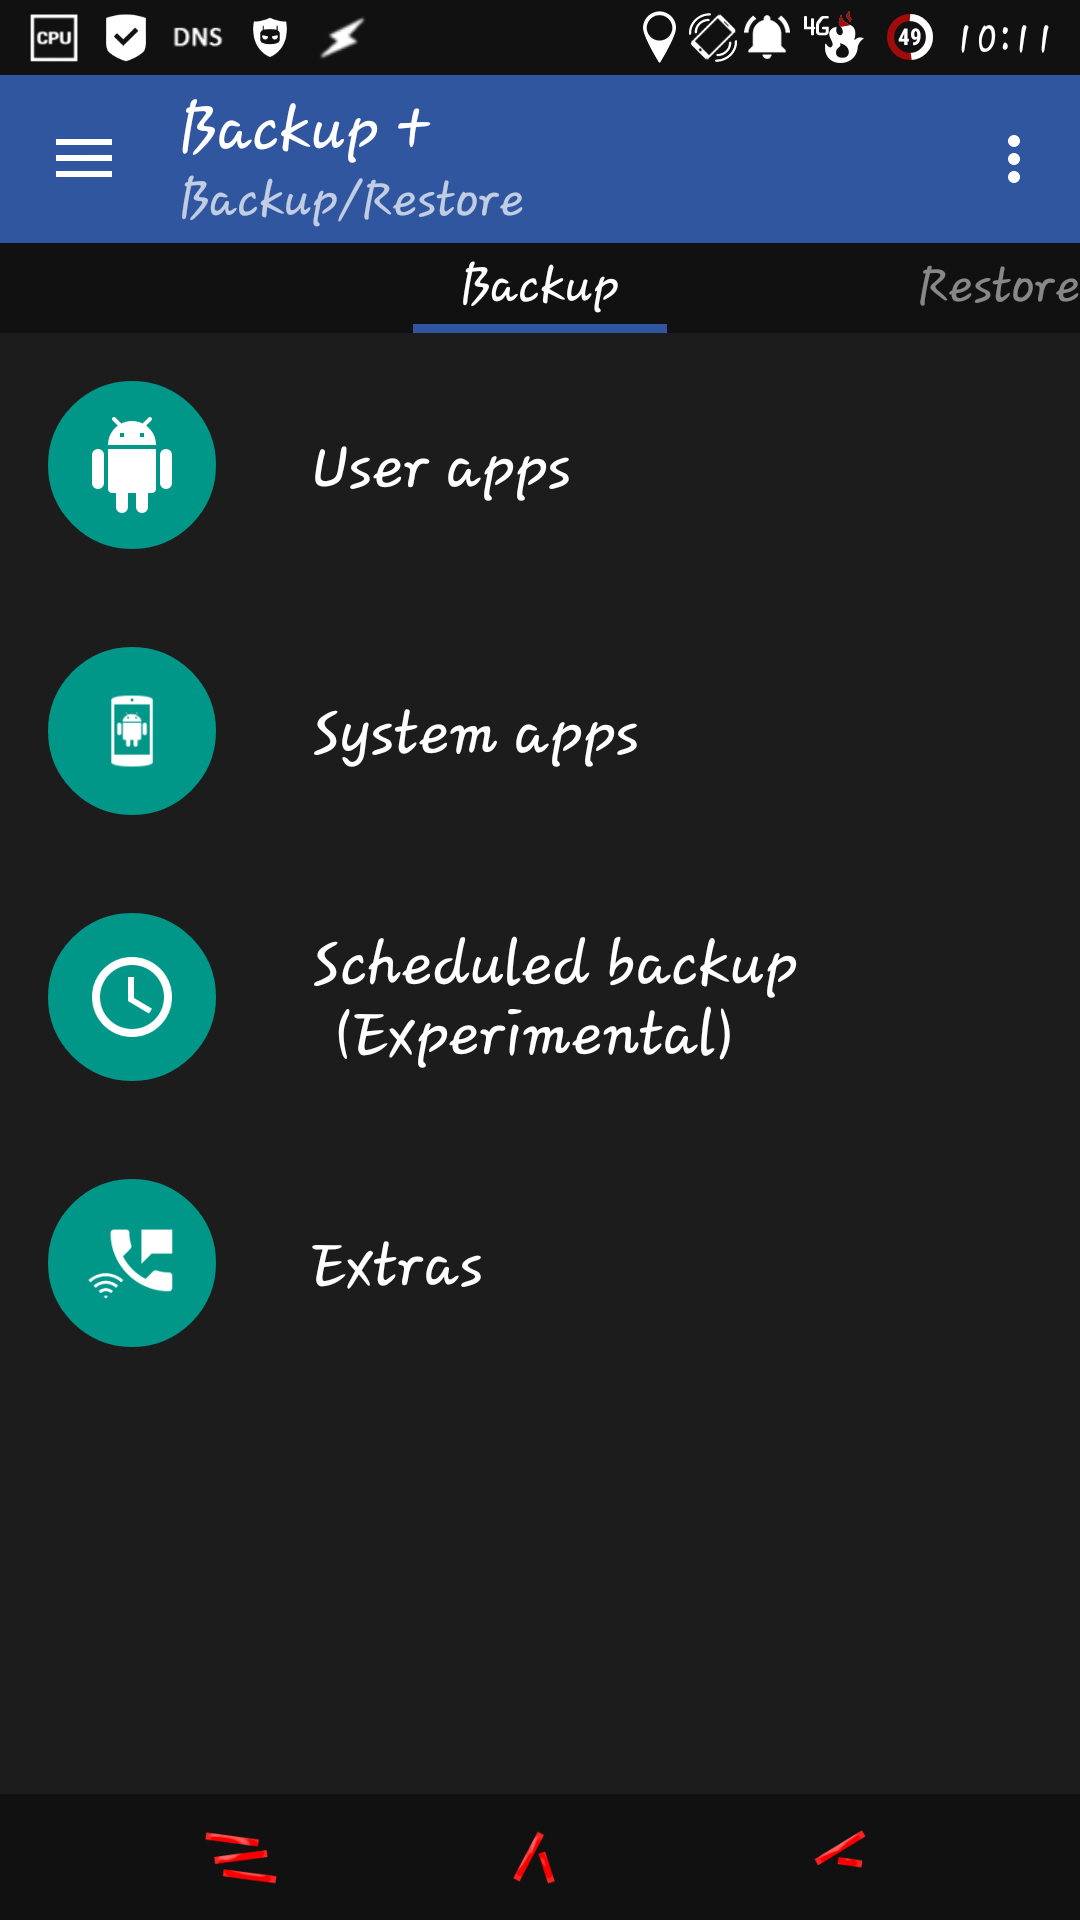 [APPLICATION ANDROID - Backup+] Sauvegarde d'applications (Comme Titanium backup) 14347245762433